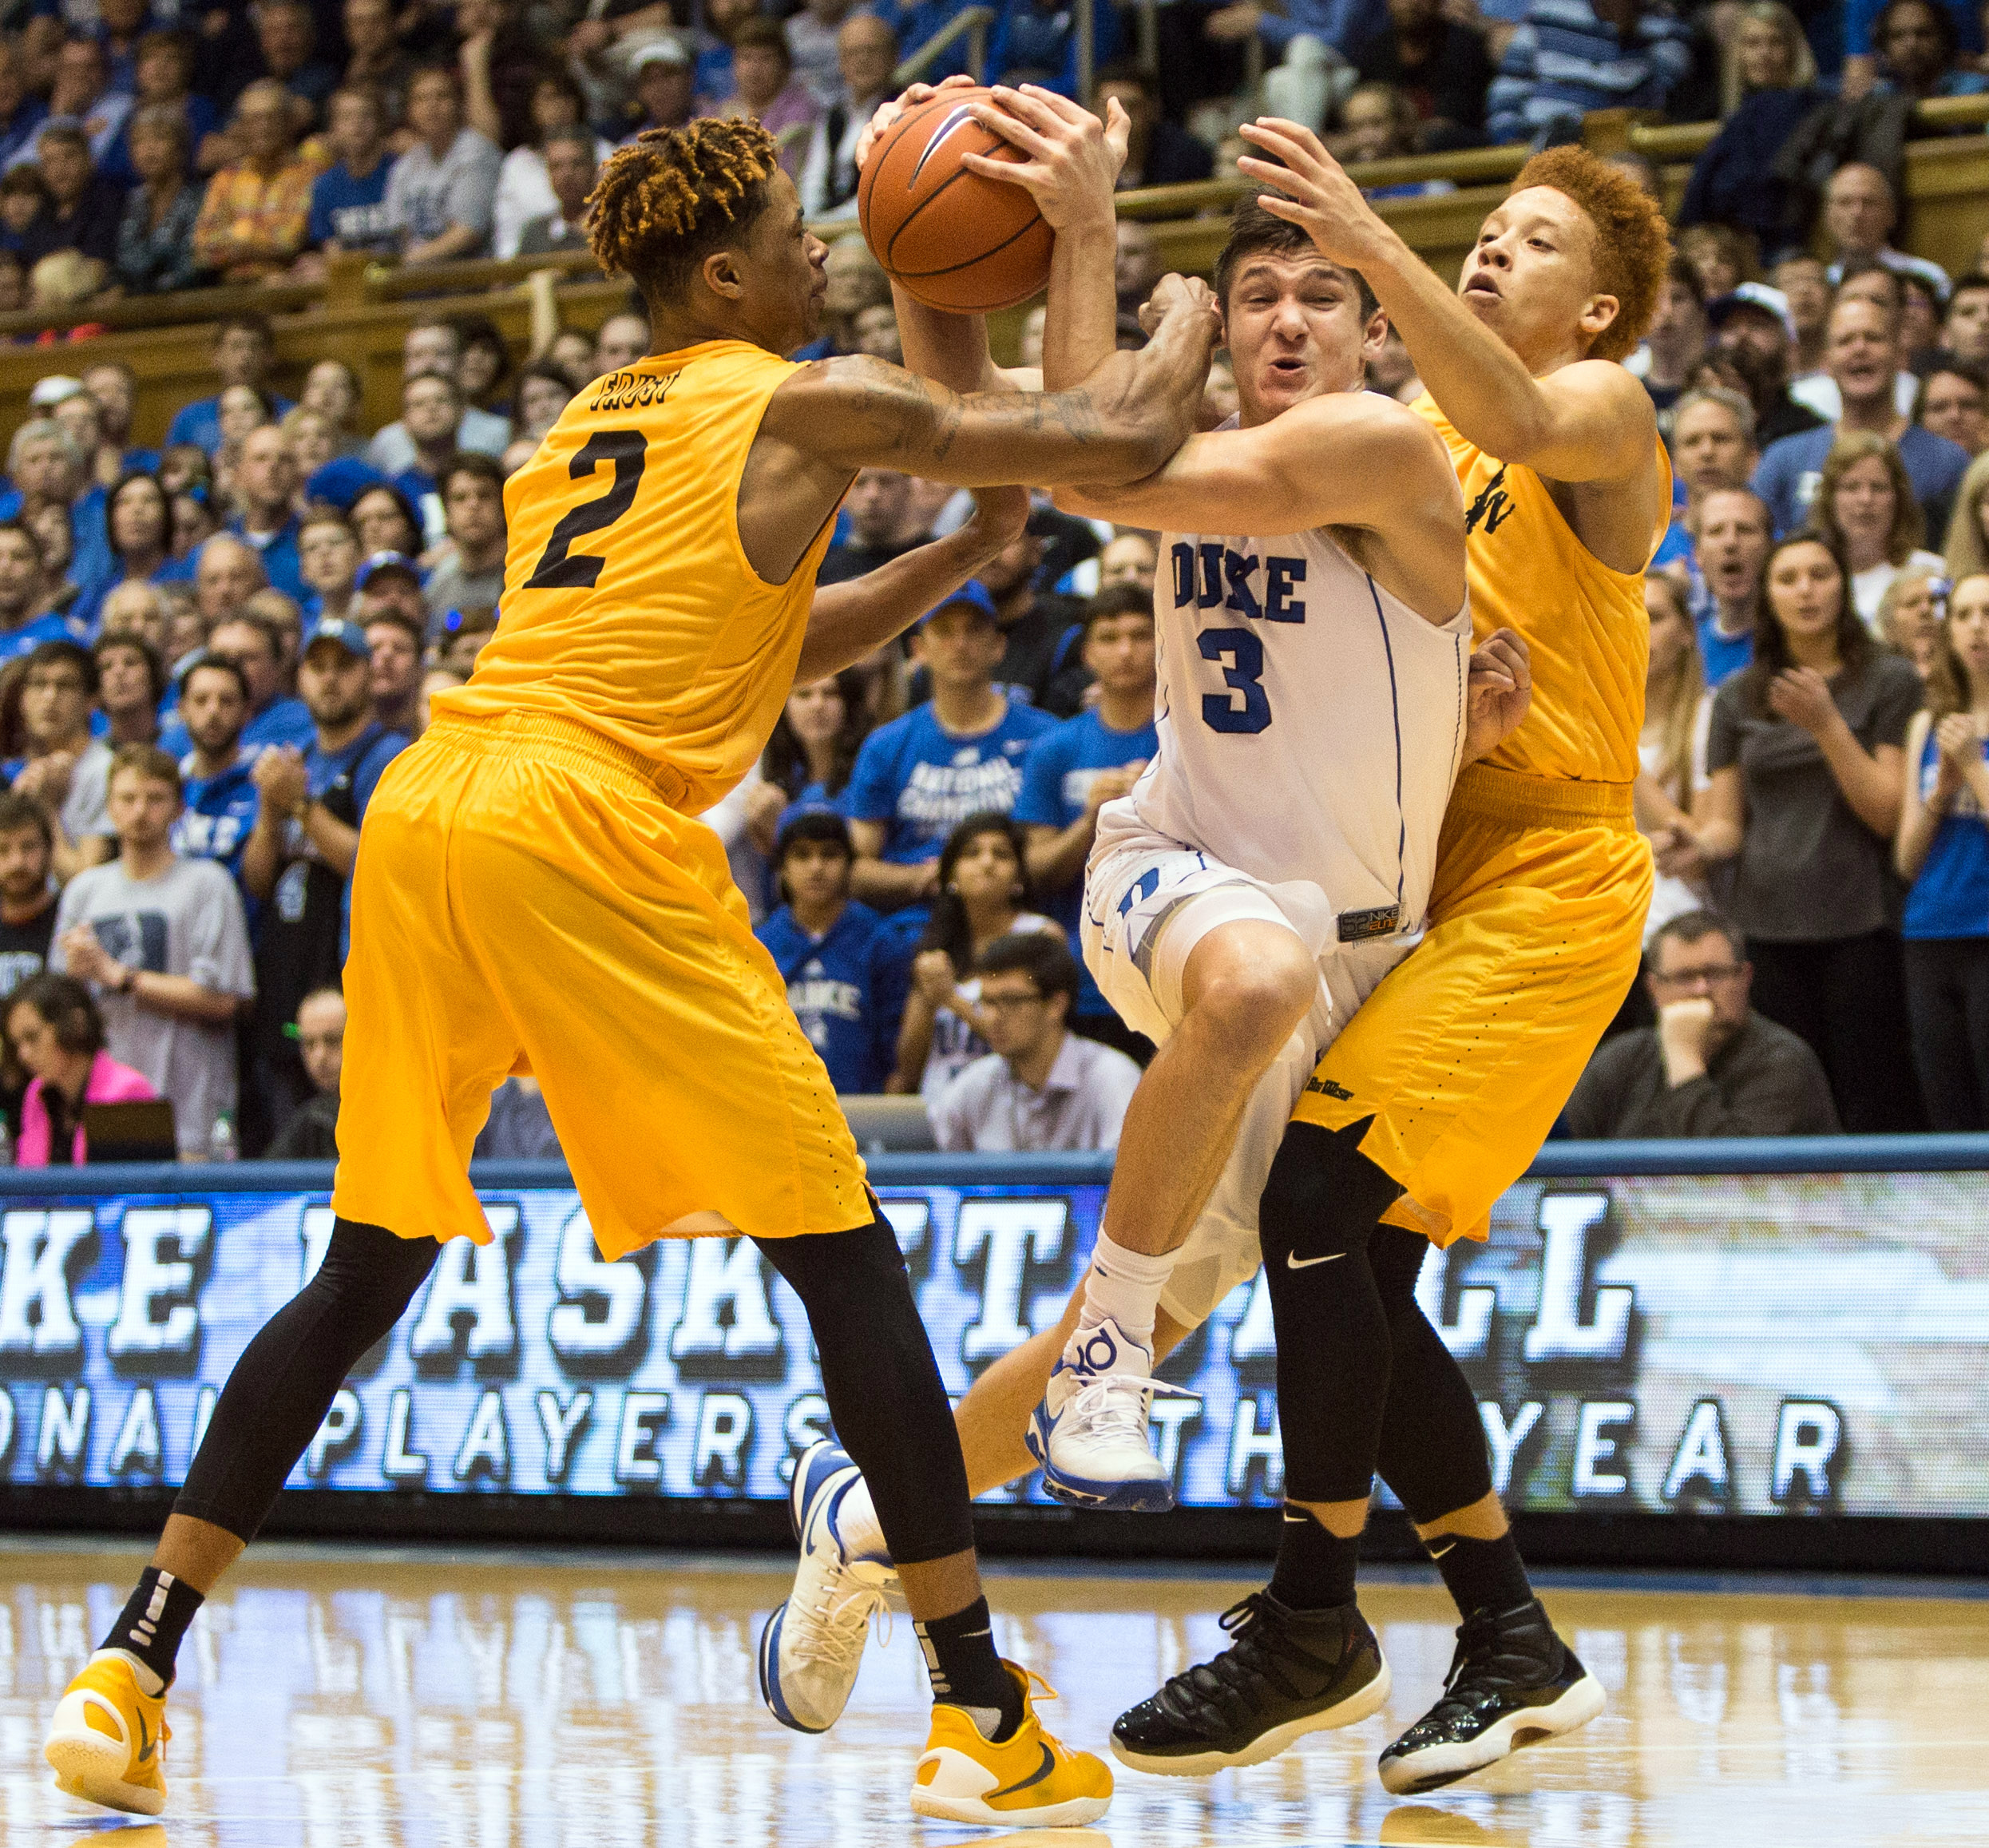 Duke's Grayson Allen (3) drives between Long Beach State's Nick Faust (2) and Noah Blackwell (3) during the first half of an NCAA college basketball game in Durham, N.C., Wednesday, Dec. 30, 2015. (AP Photo/Ben McKeown)